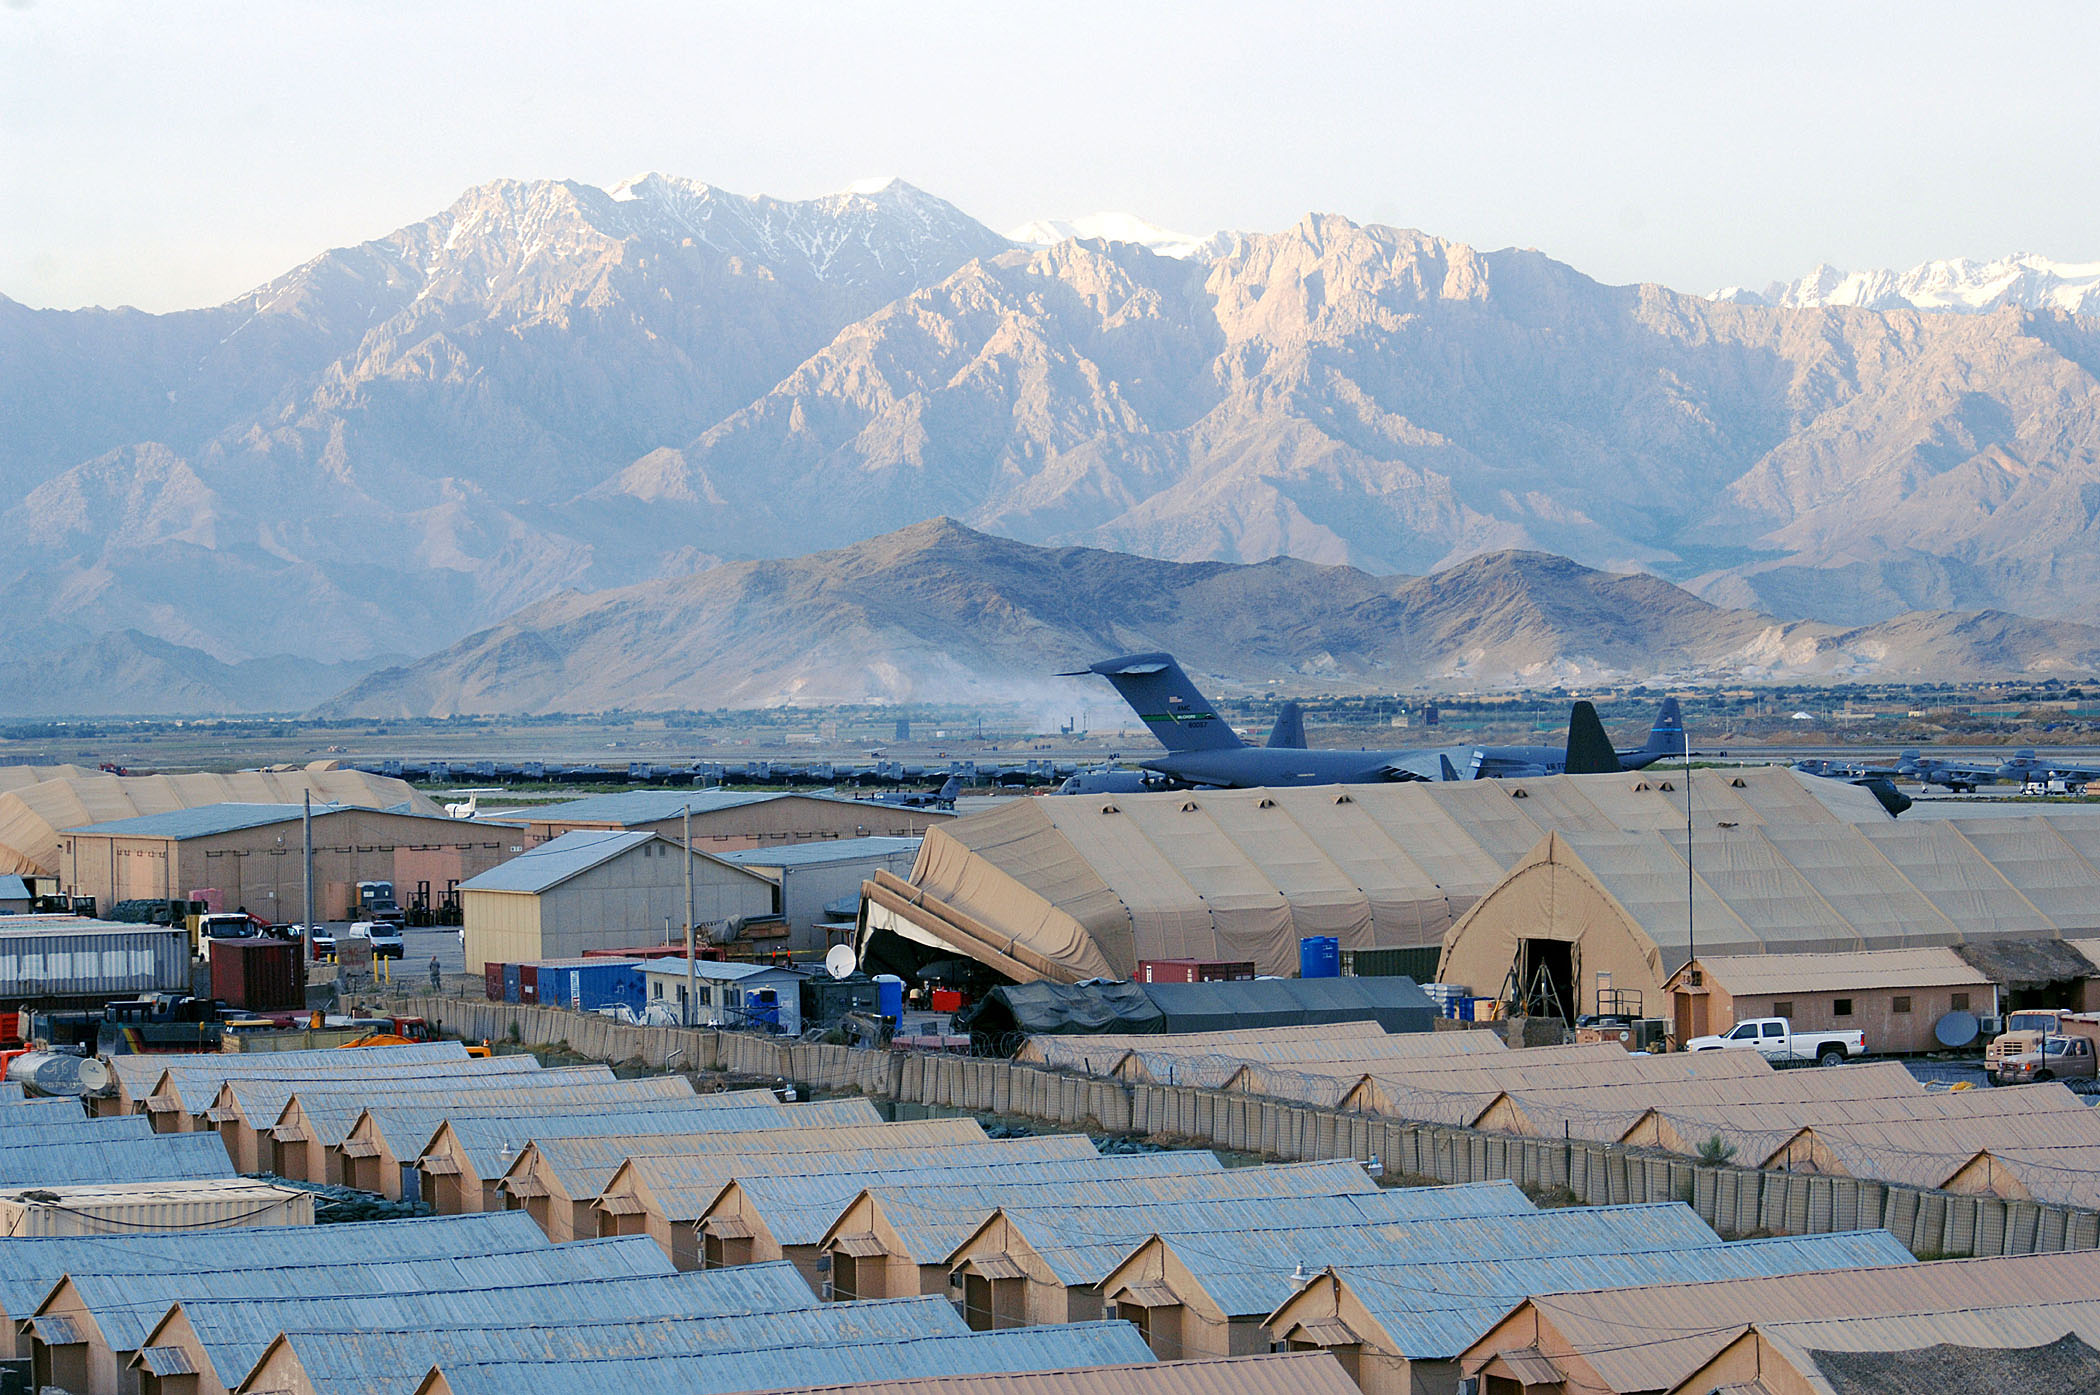 070520 Bagram Airfield from the Air Traffic Control Towers catwalk 1